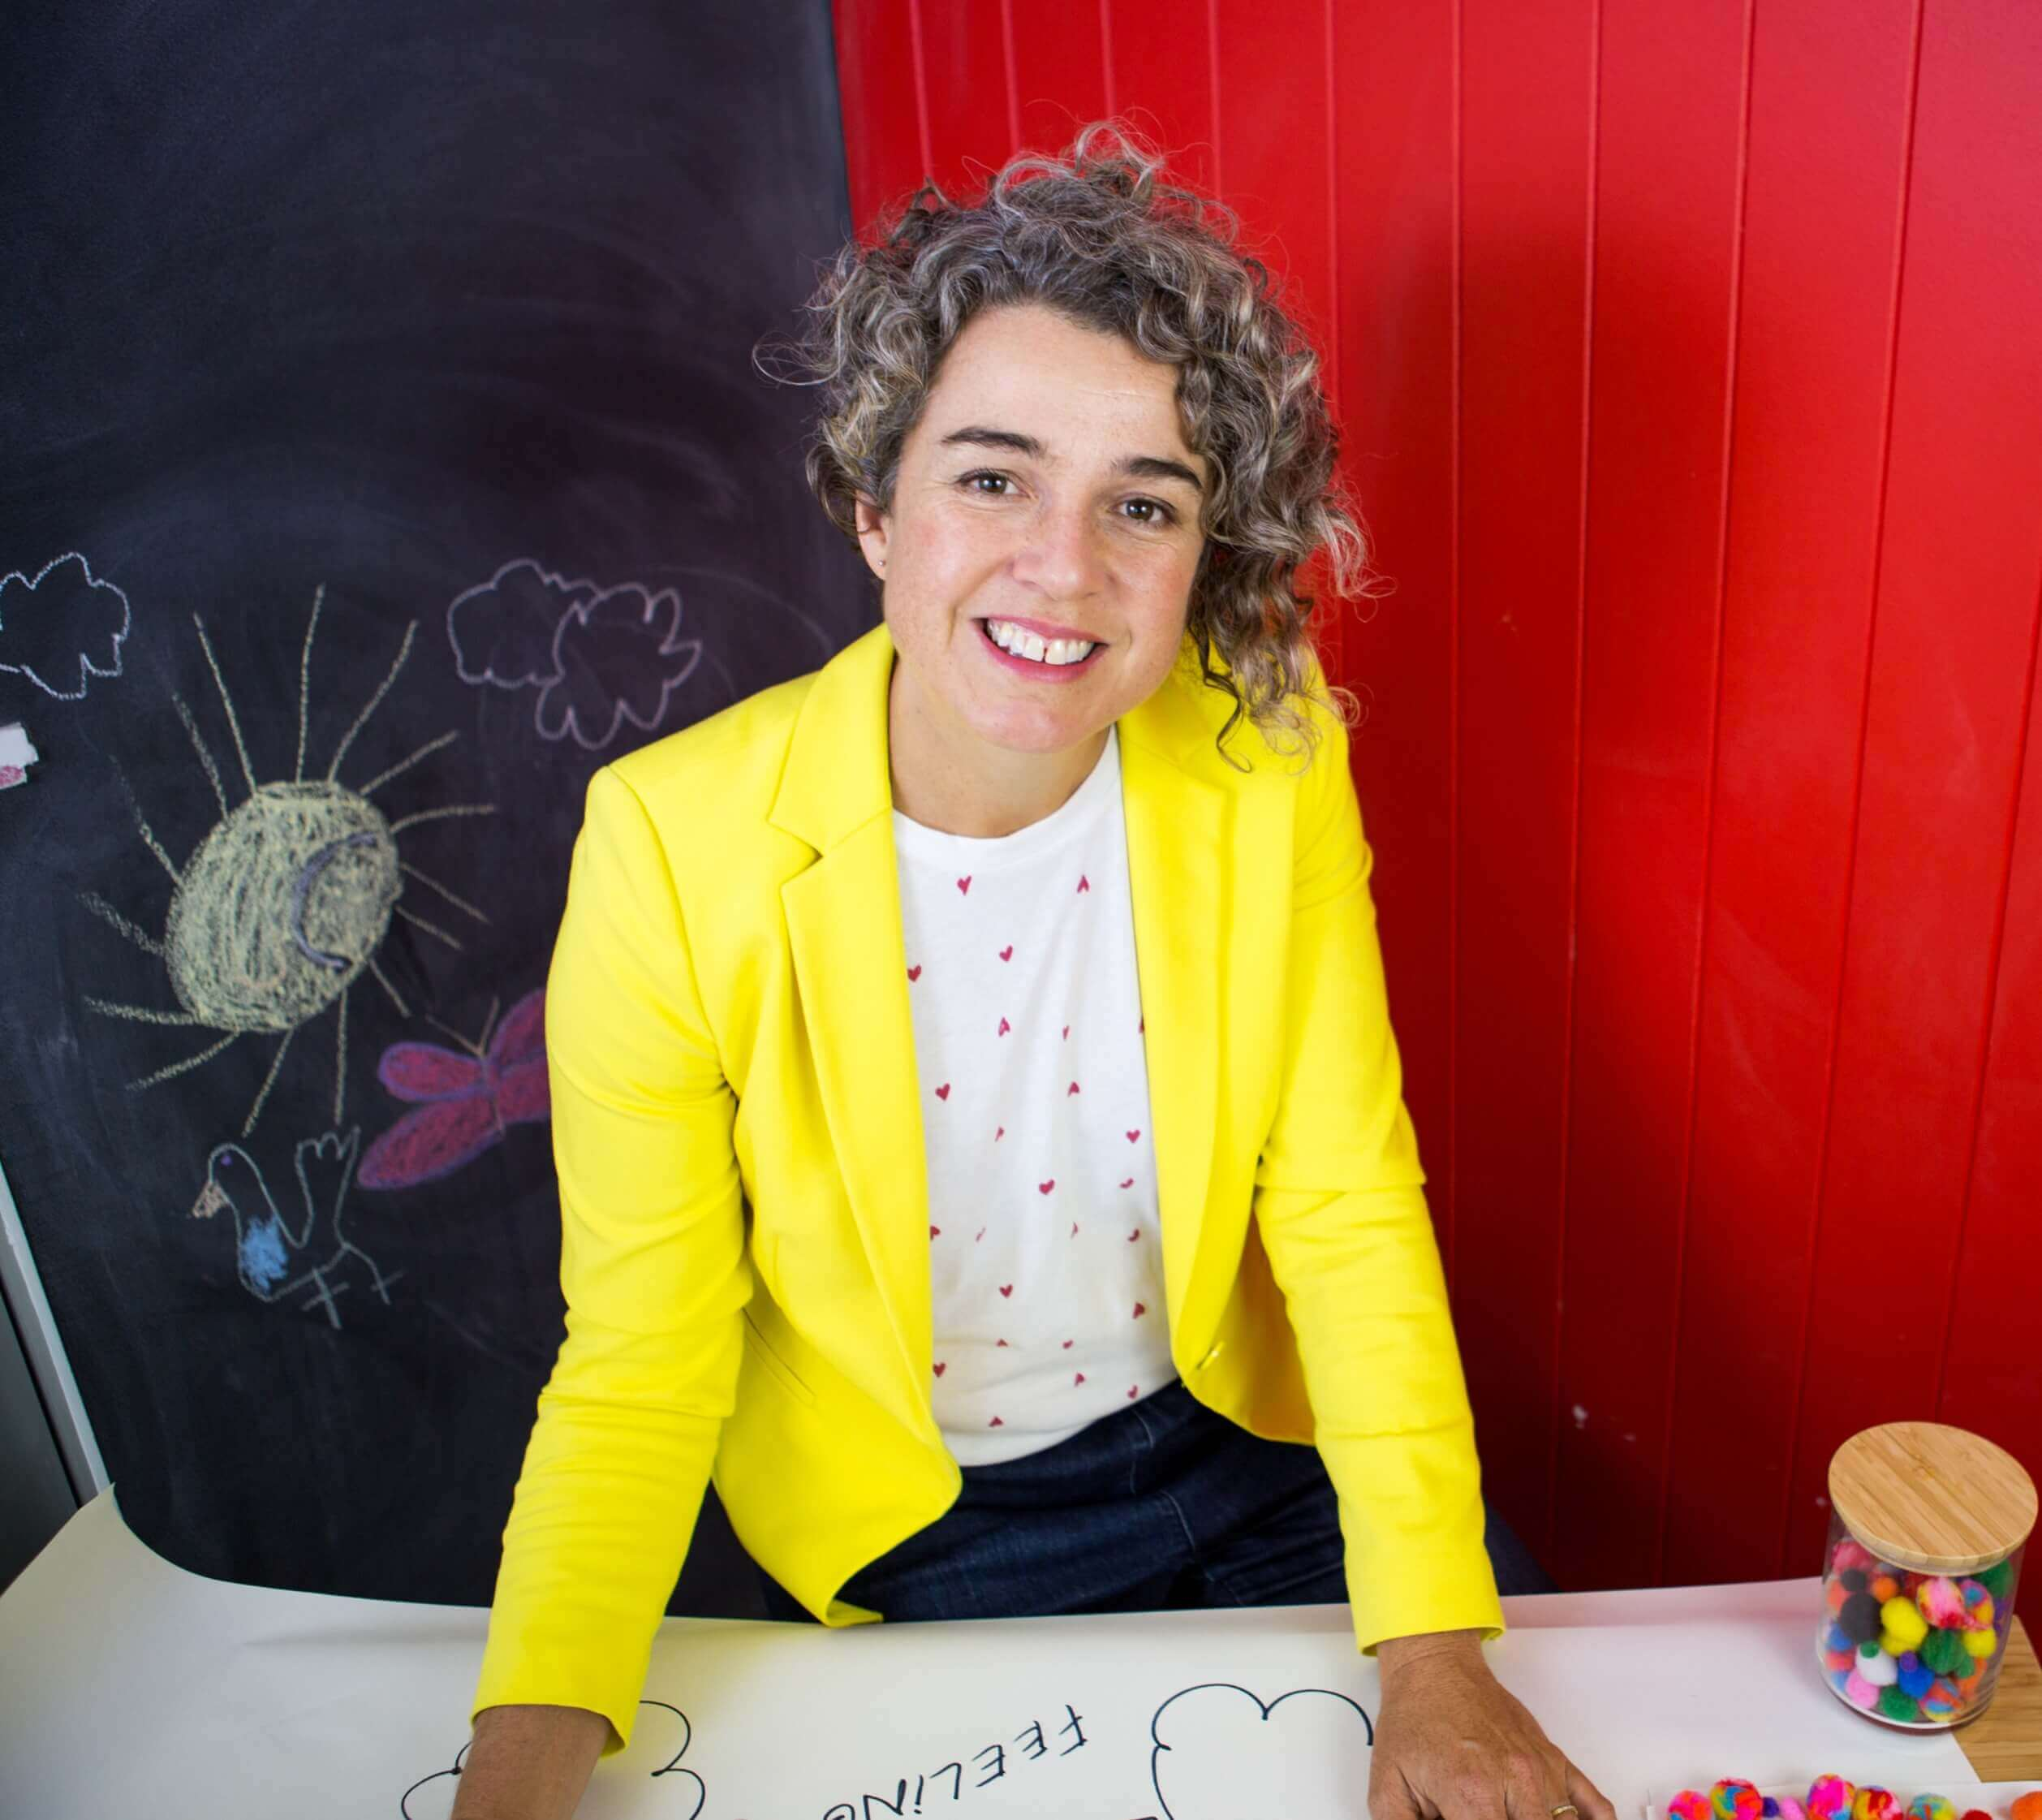 """Dr Kimberley O'Brien is one of Australia's most trusted and recognised child psychologists with a knack for solving issues from the child's perspective. In 2016, Kimberley completed a PhD on """"Belonging and socioemotional wellbeing among students in the transition from primary to secondary school"""". With 20 years of experience working locally and internationally, she is the co-founder of the Quirky Kid Clinic and an expert in child development and mental health."""